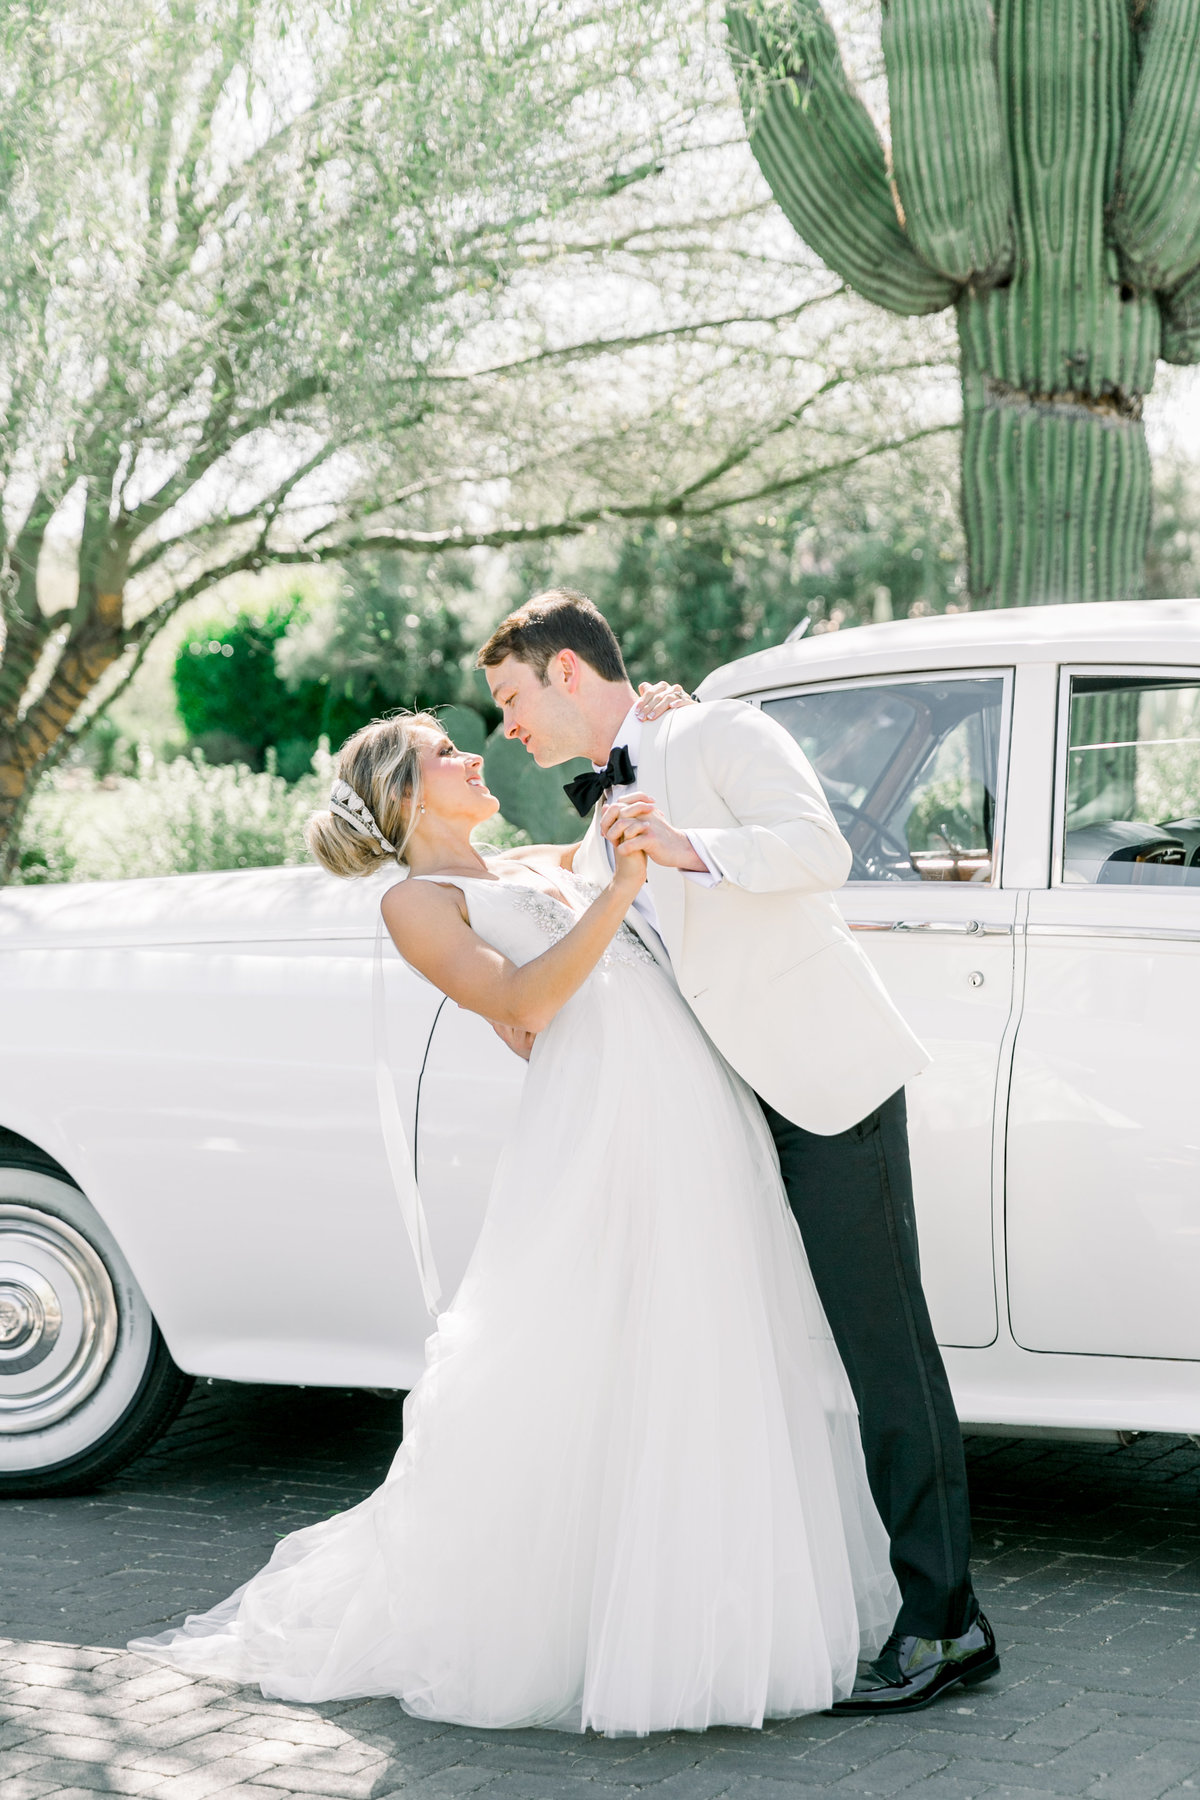 Karlie Colleen Photography - El Chorro Arizona Desert Wedding - Kylie & Doug-315